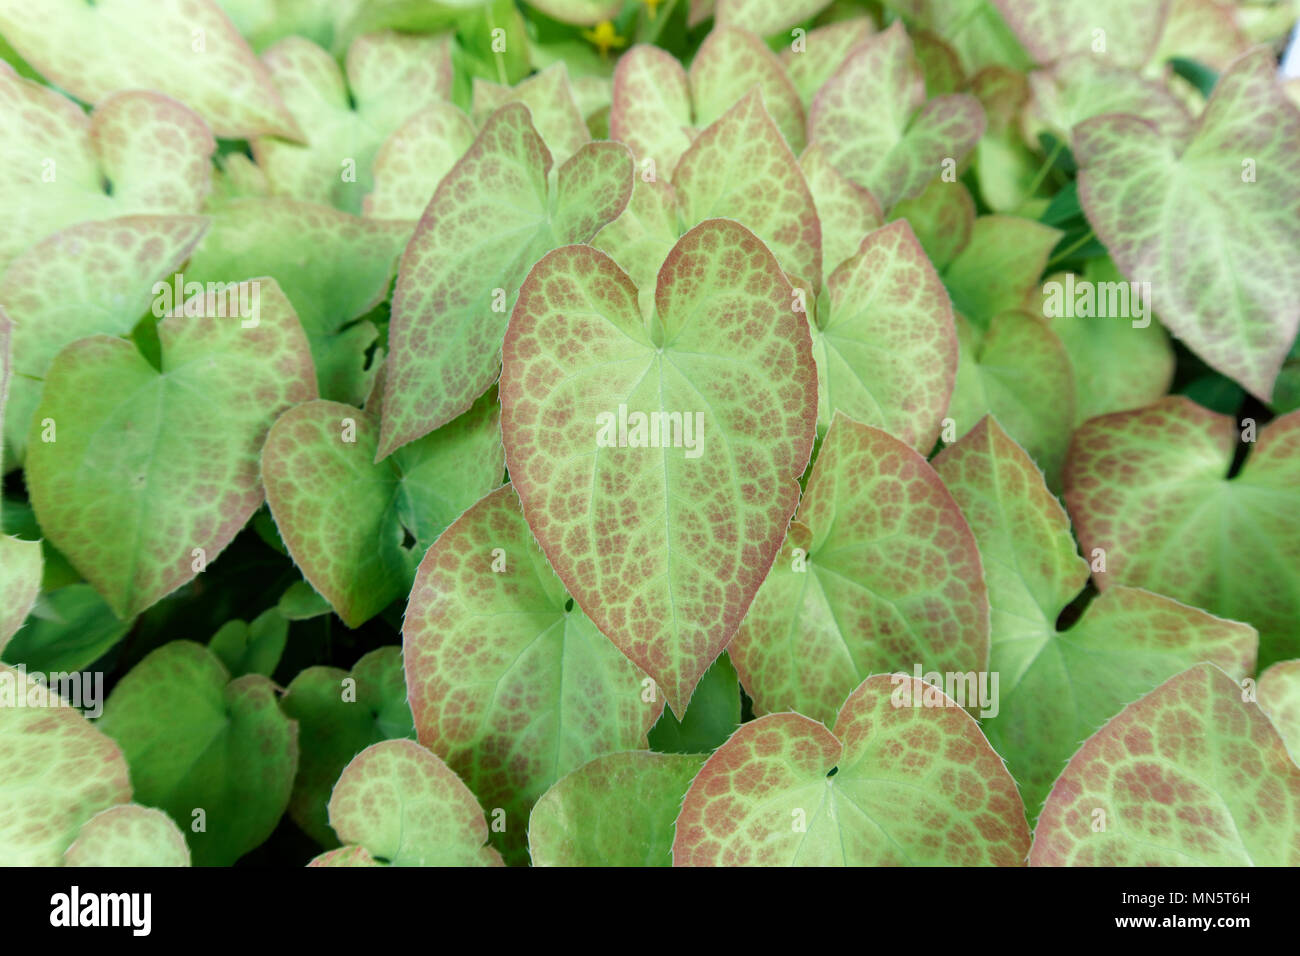 close-up-of-an-epimedium-plant-with-hear